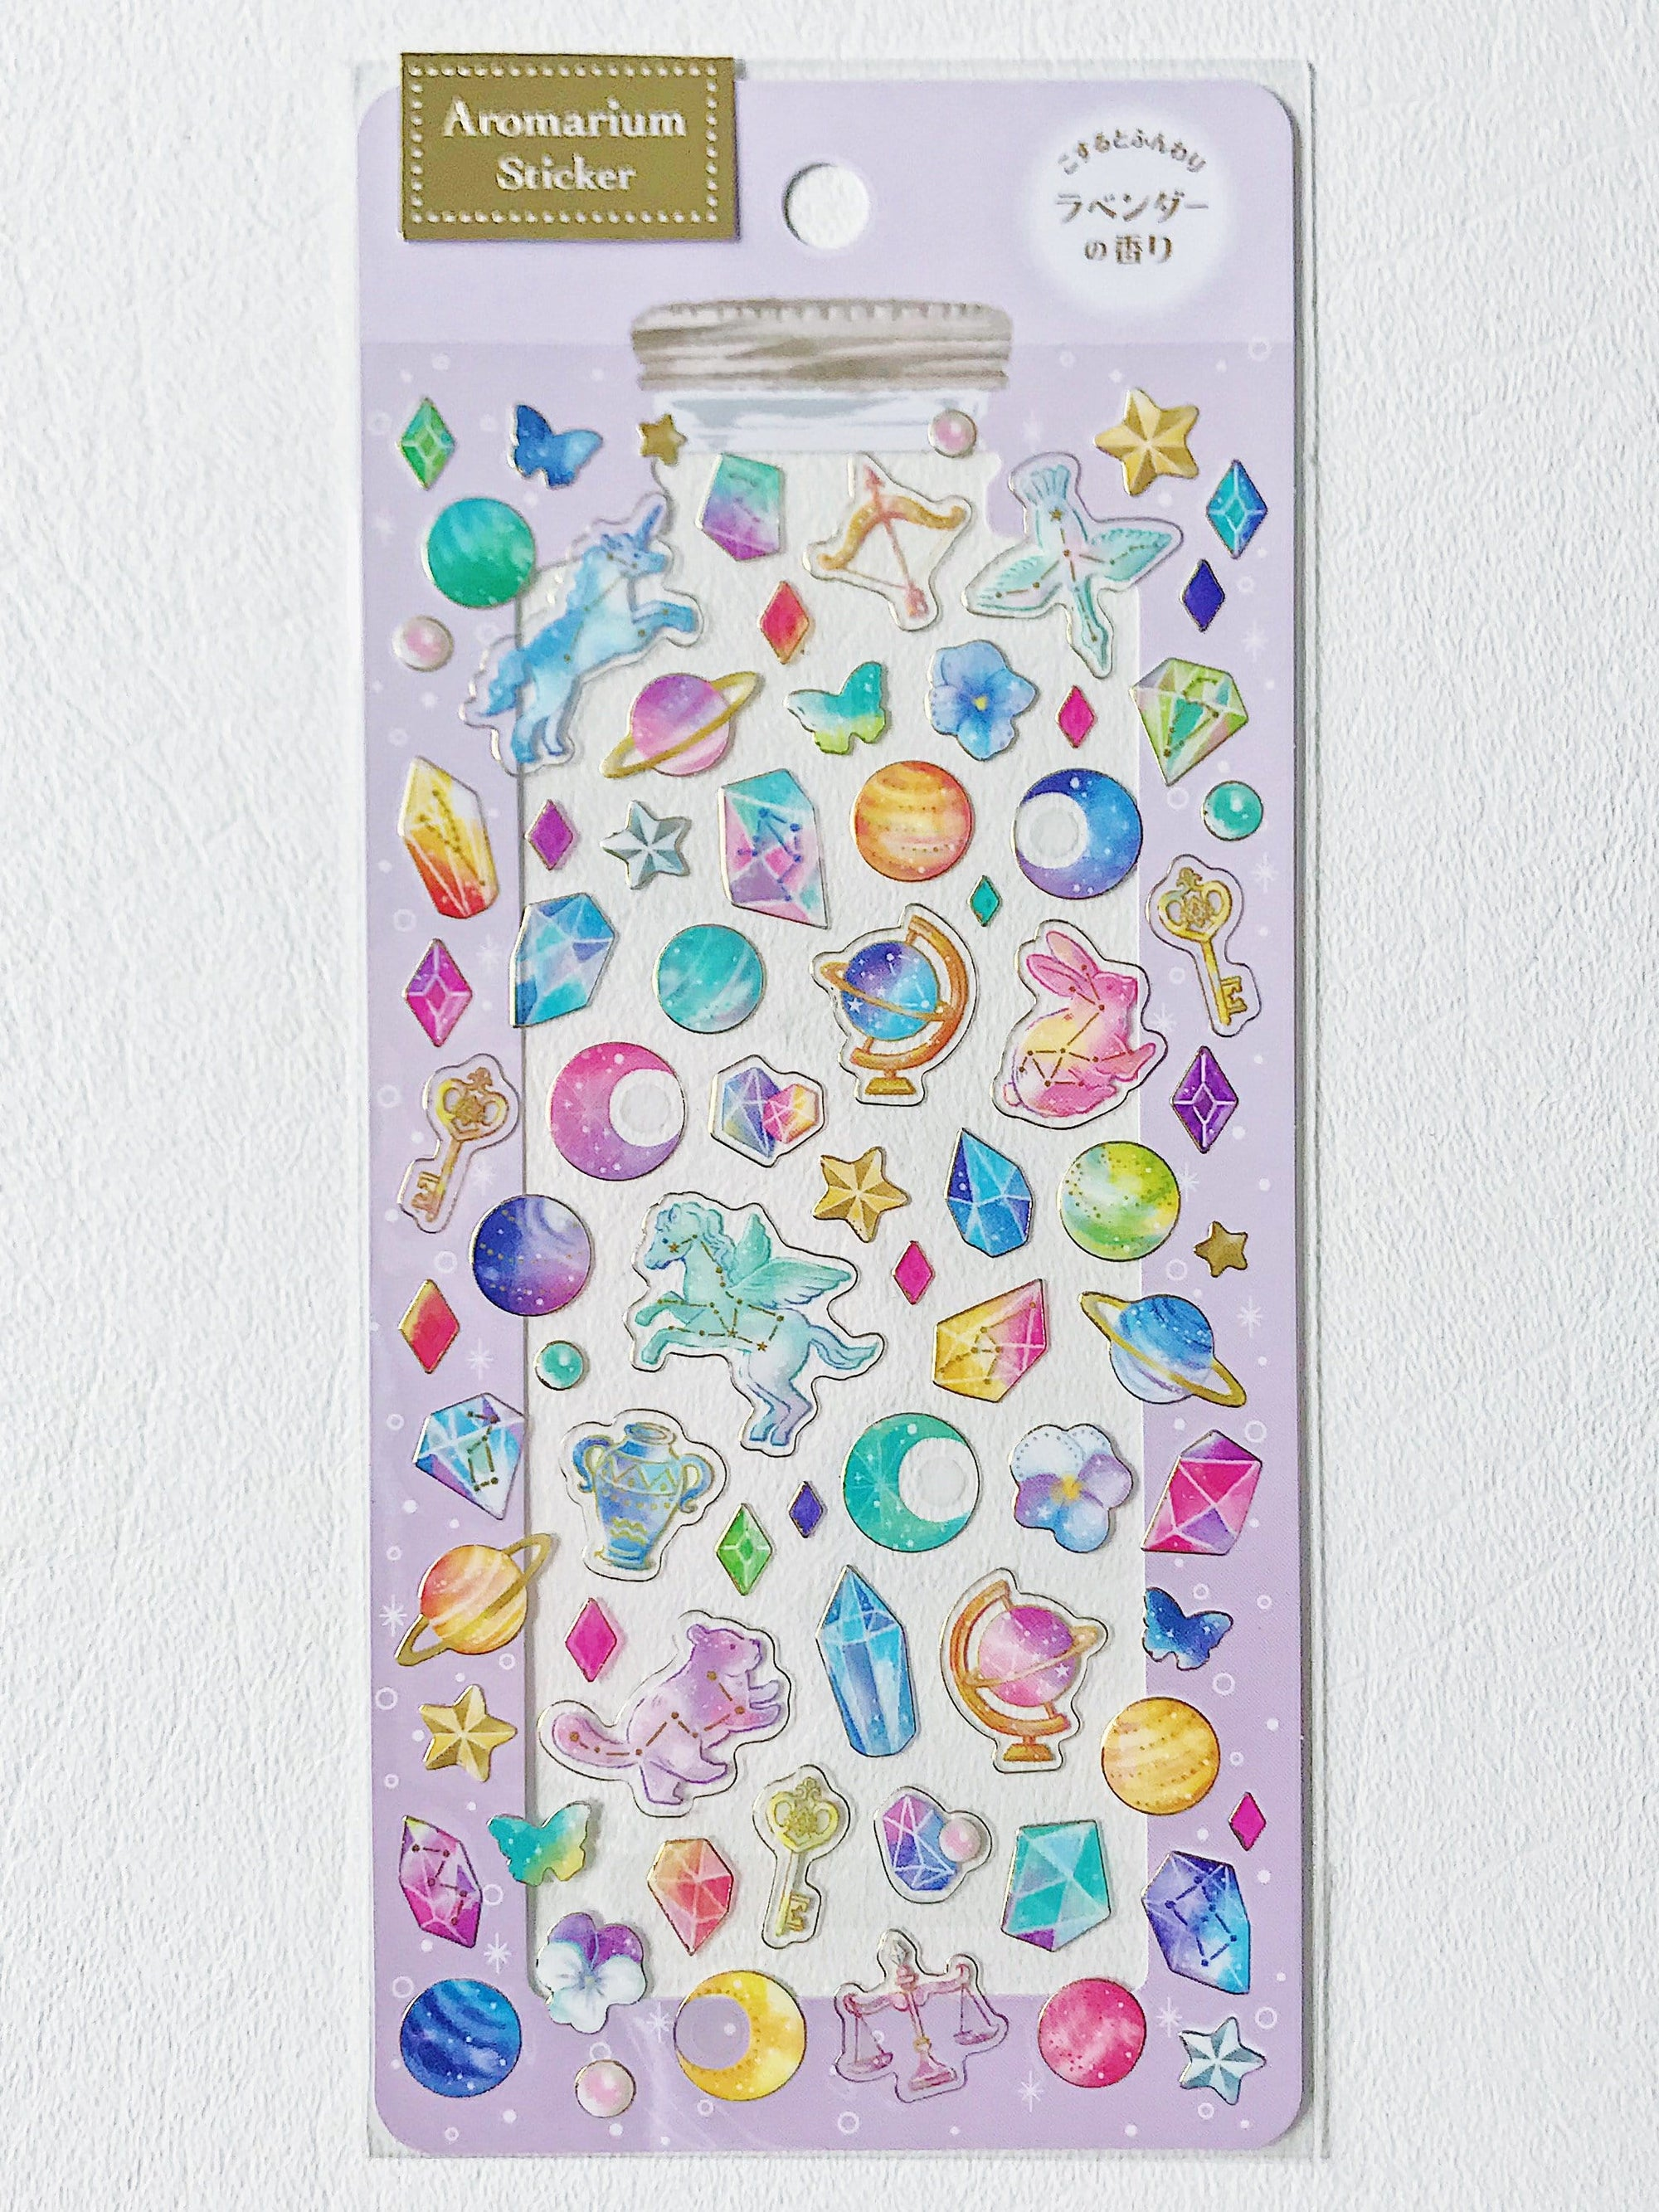 Scented Aromarium Clear Stickers- Space Fantasy Theme, Lavender Scent